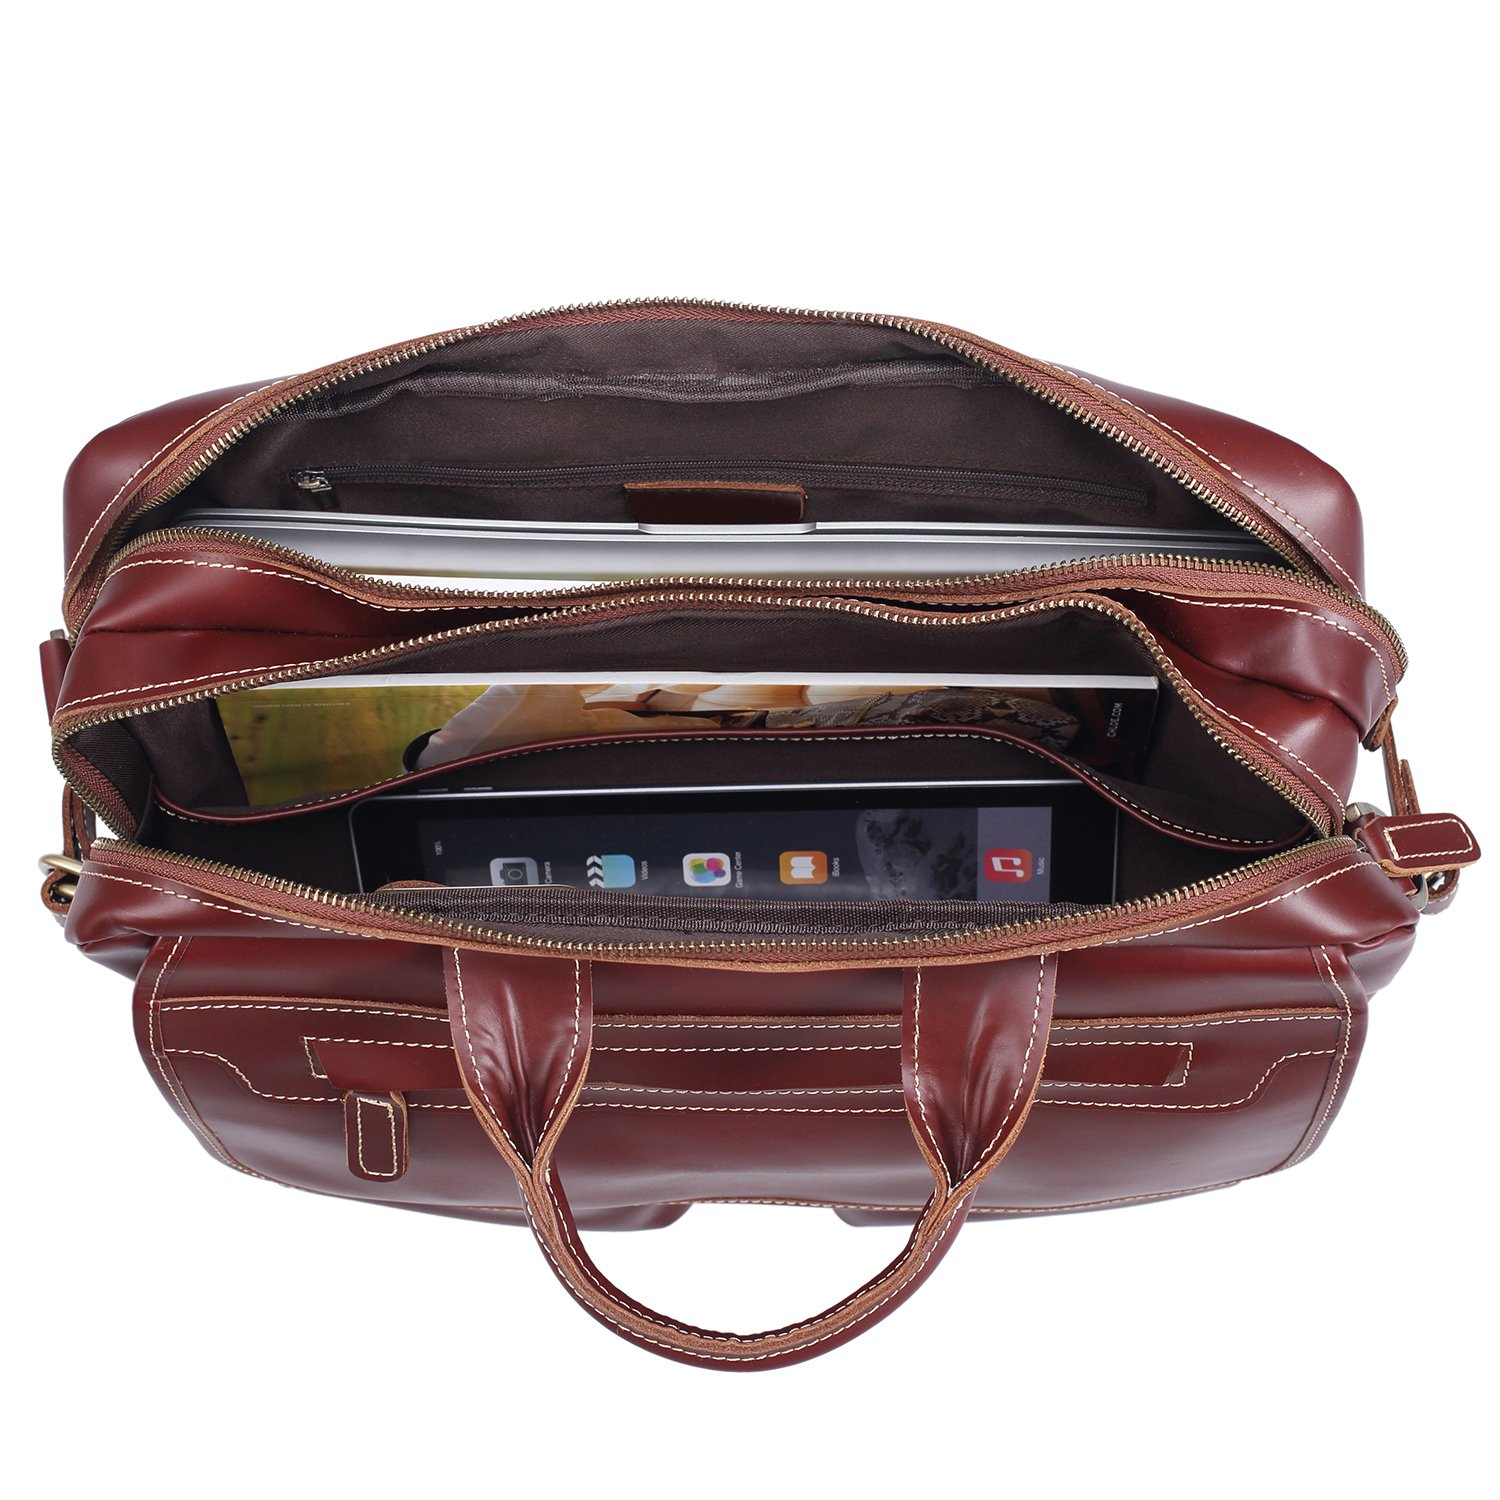 Polare Italian Leather Briefcase Should Bag Attache Fit 15.6inch Laptop by Polare (Image #6)